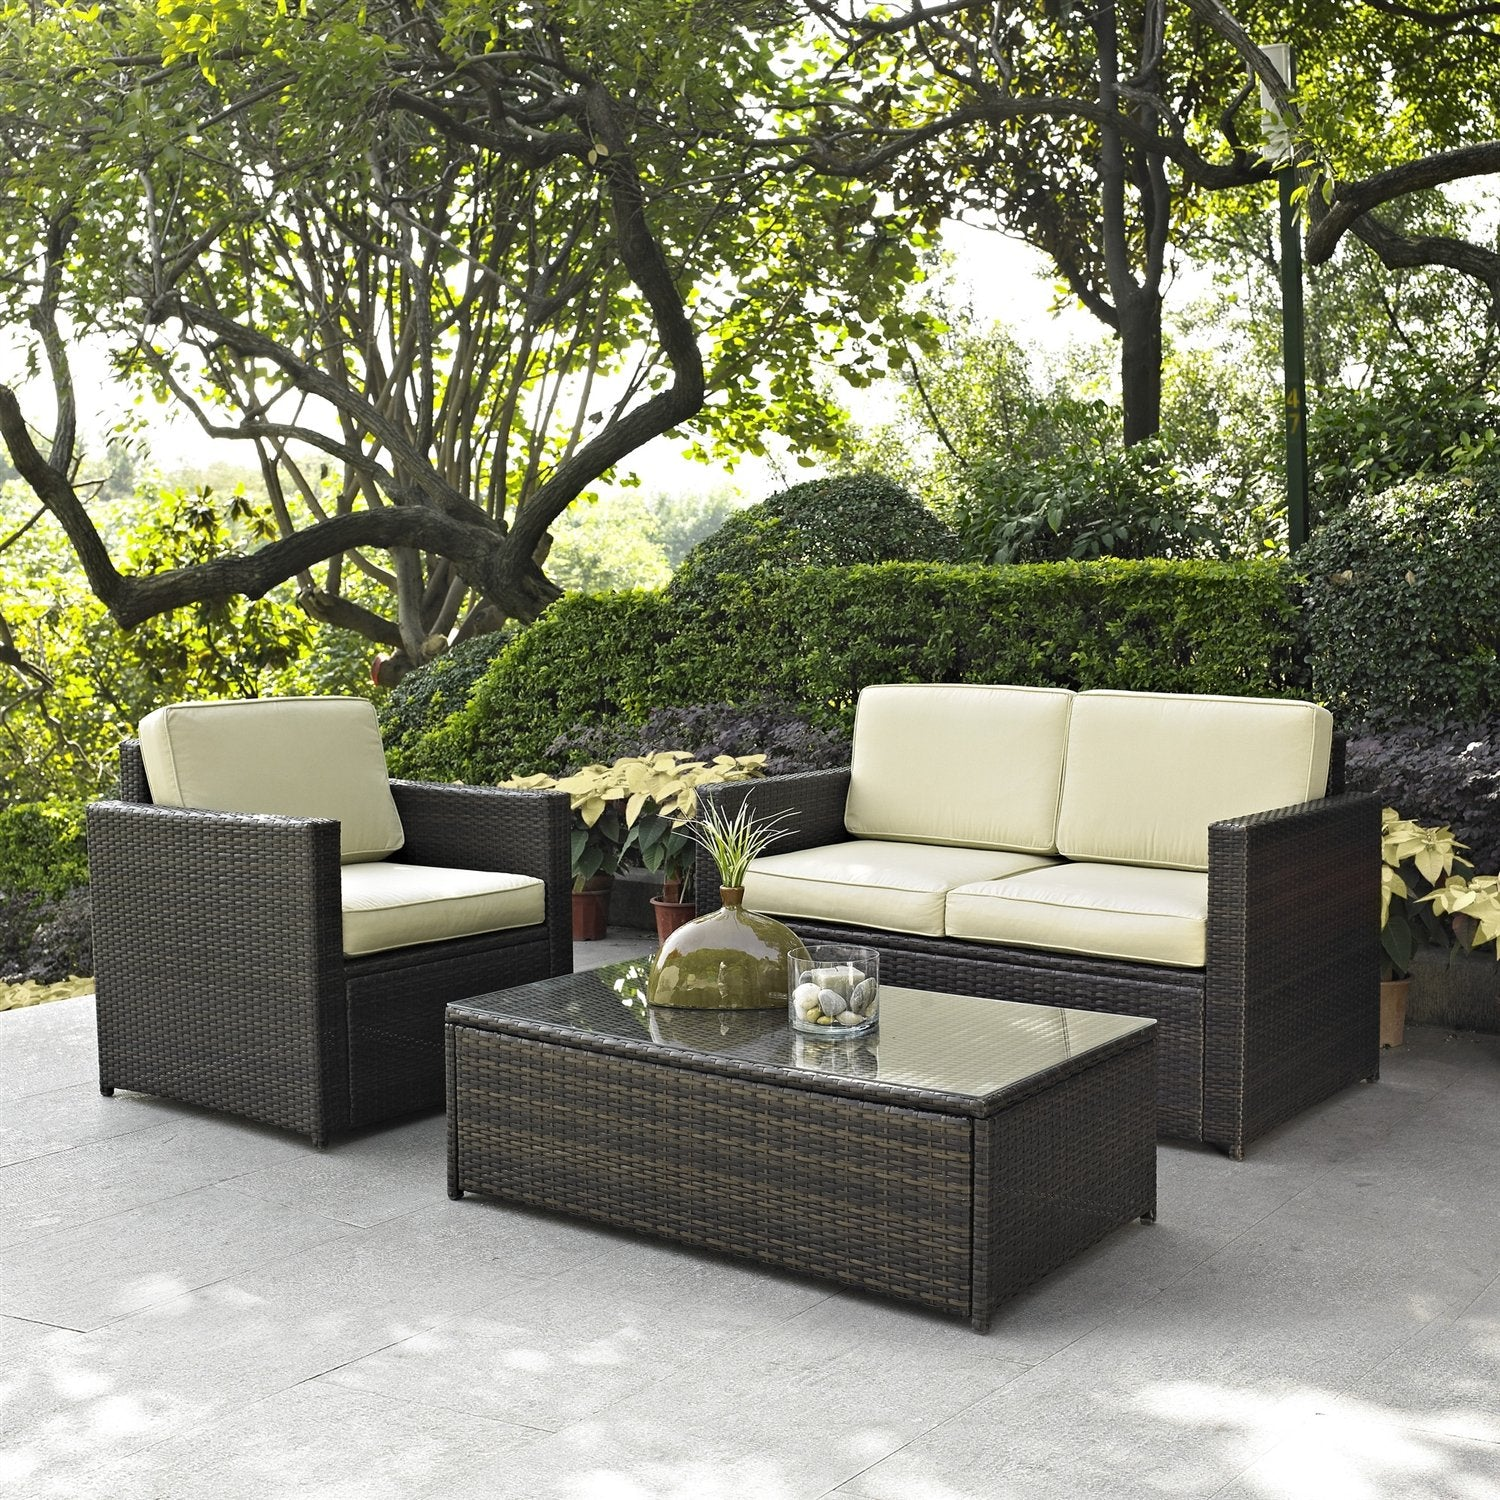 3 Piece Outdoor Patio Furniture Set With Chair Loveseat And Cocktail Table